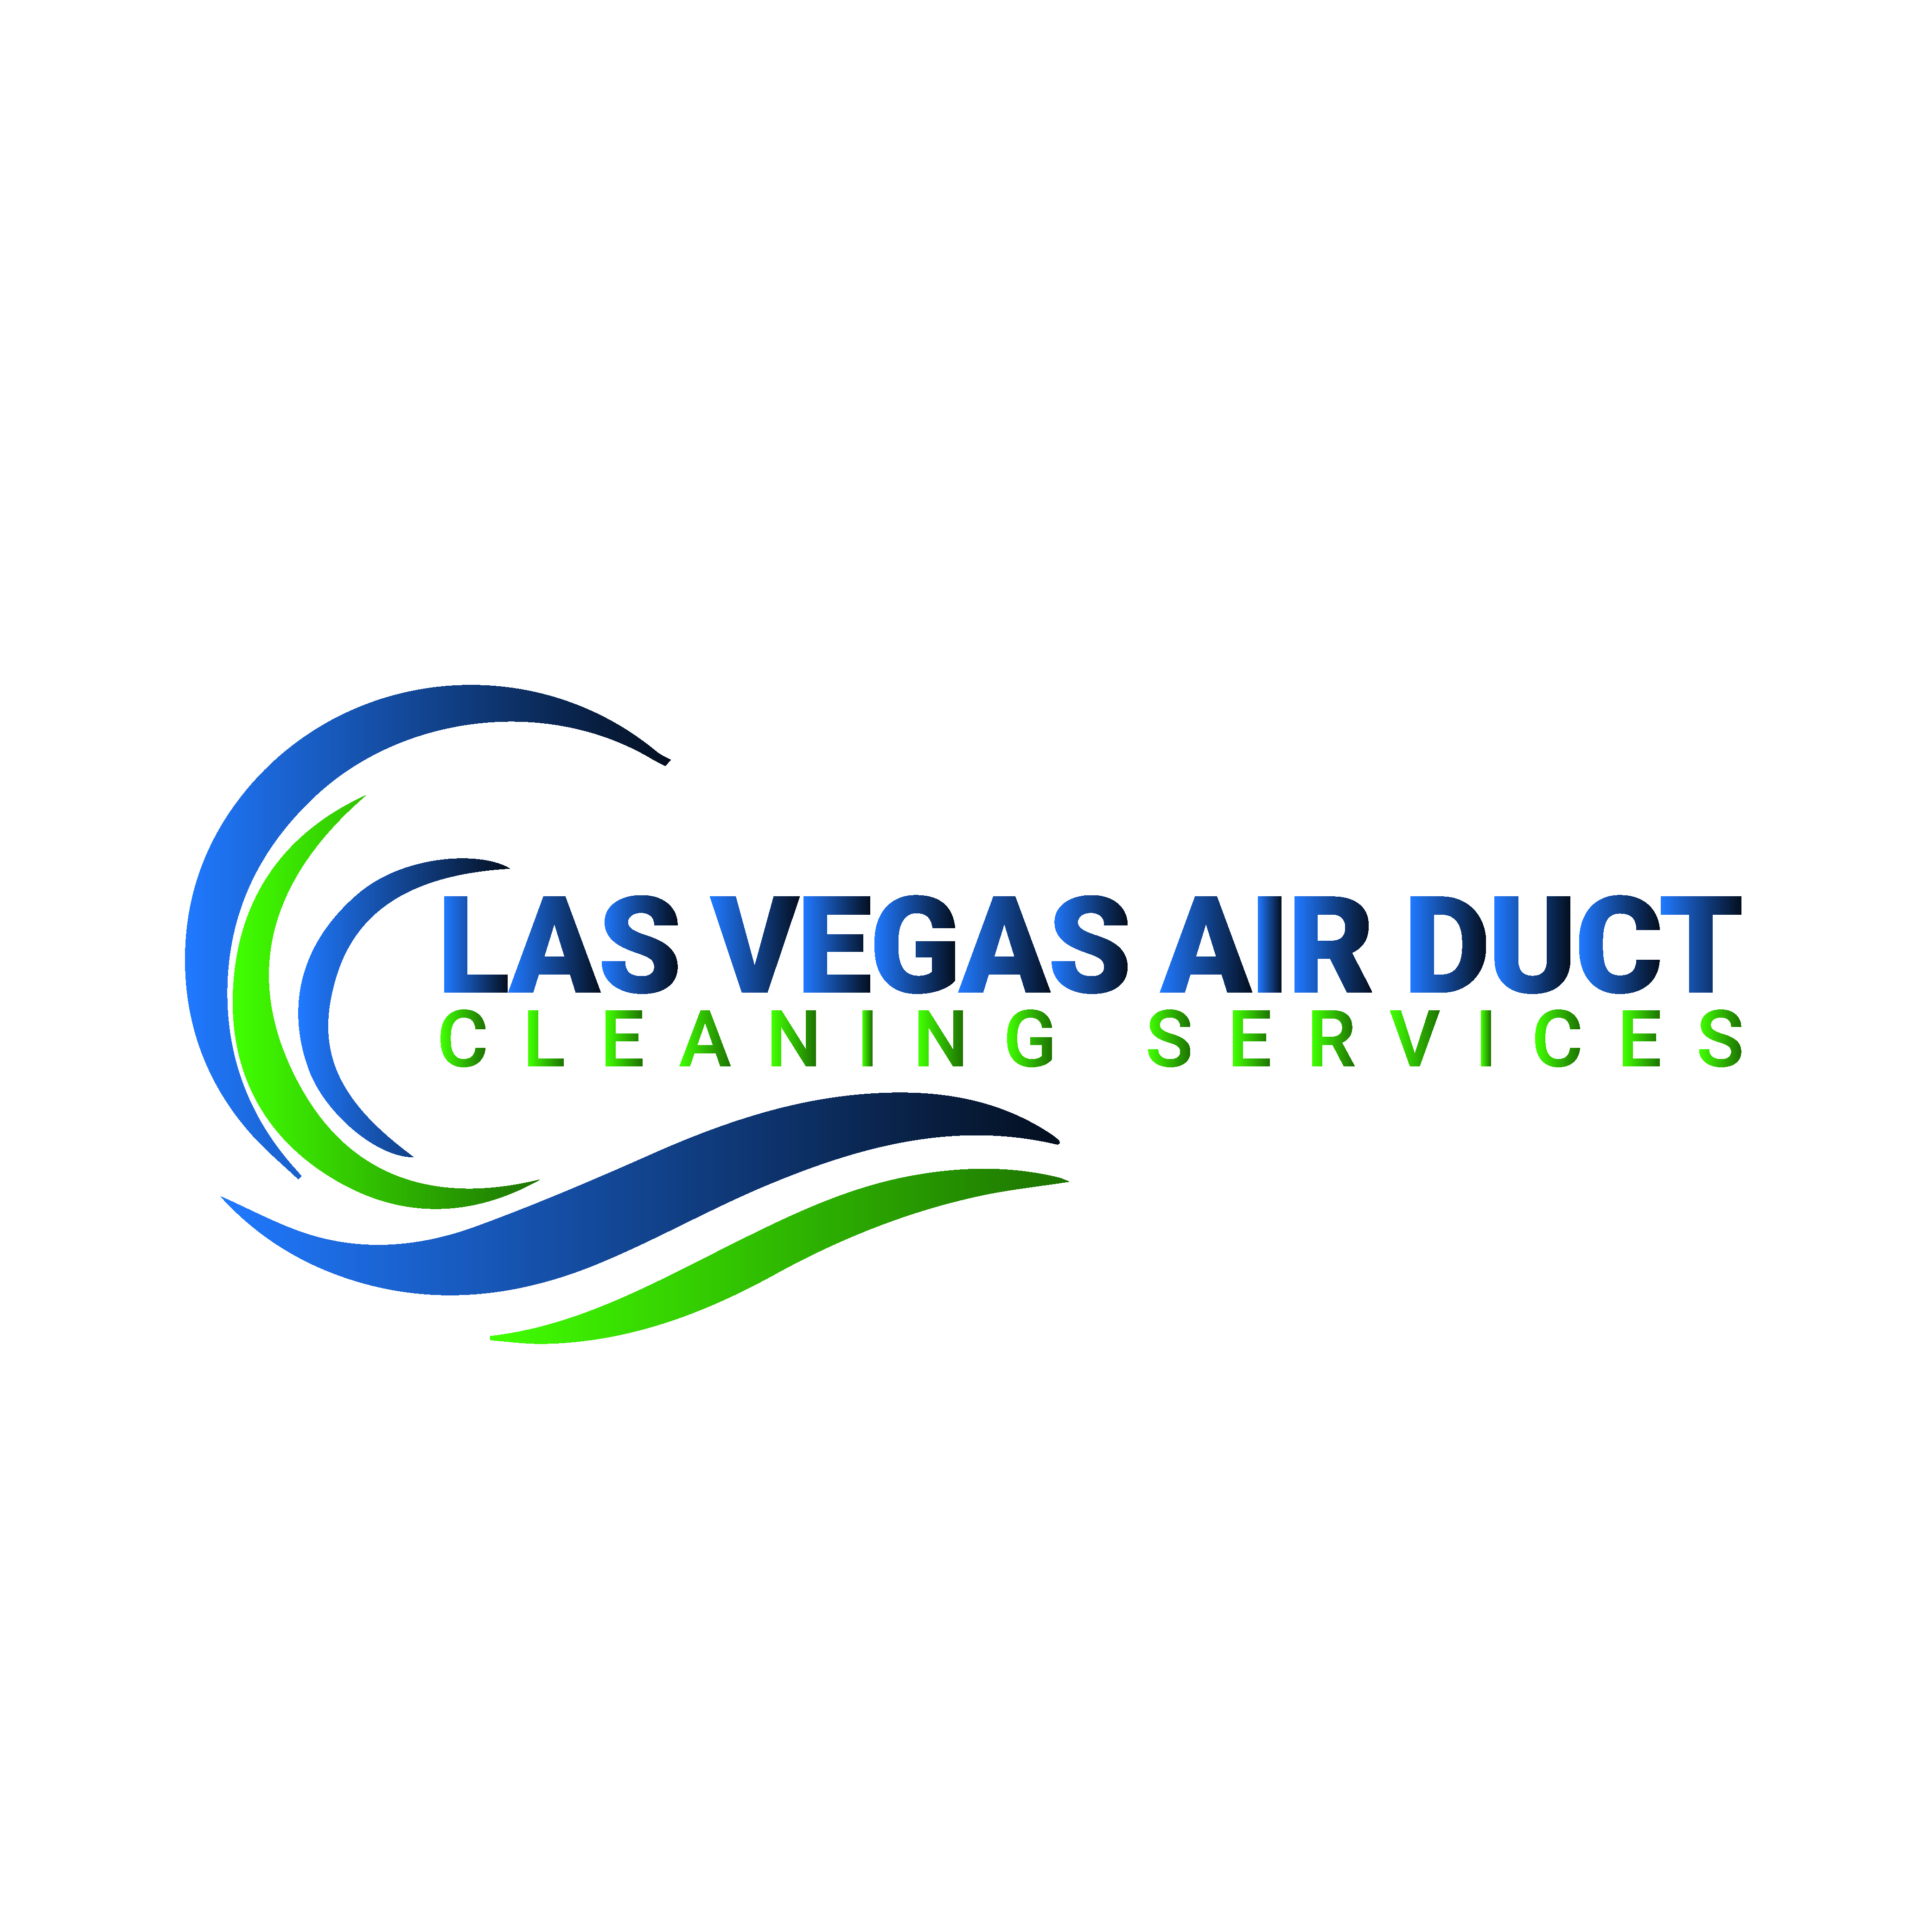 Las Vegas Air Duct Cleaning Services logo